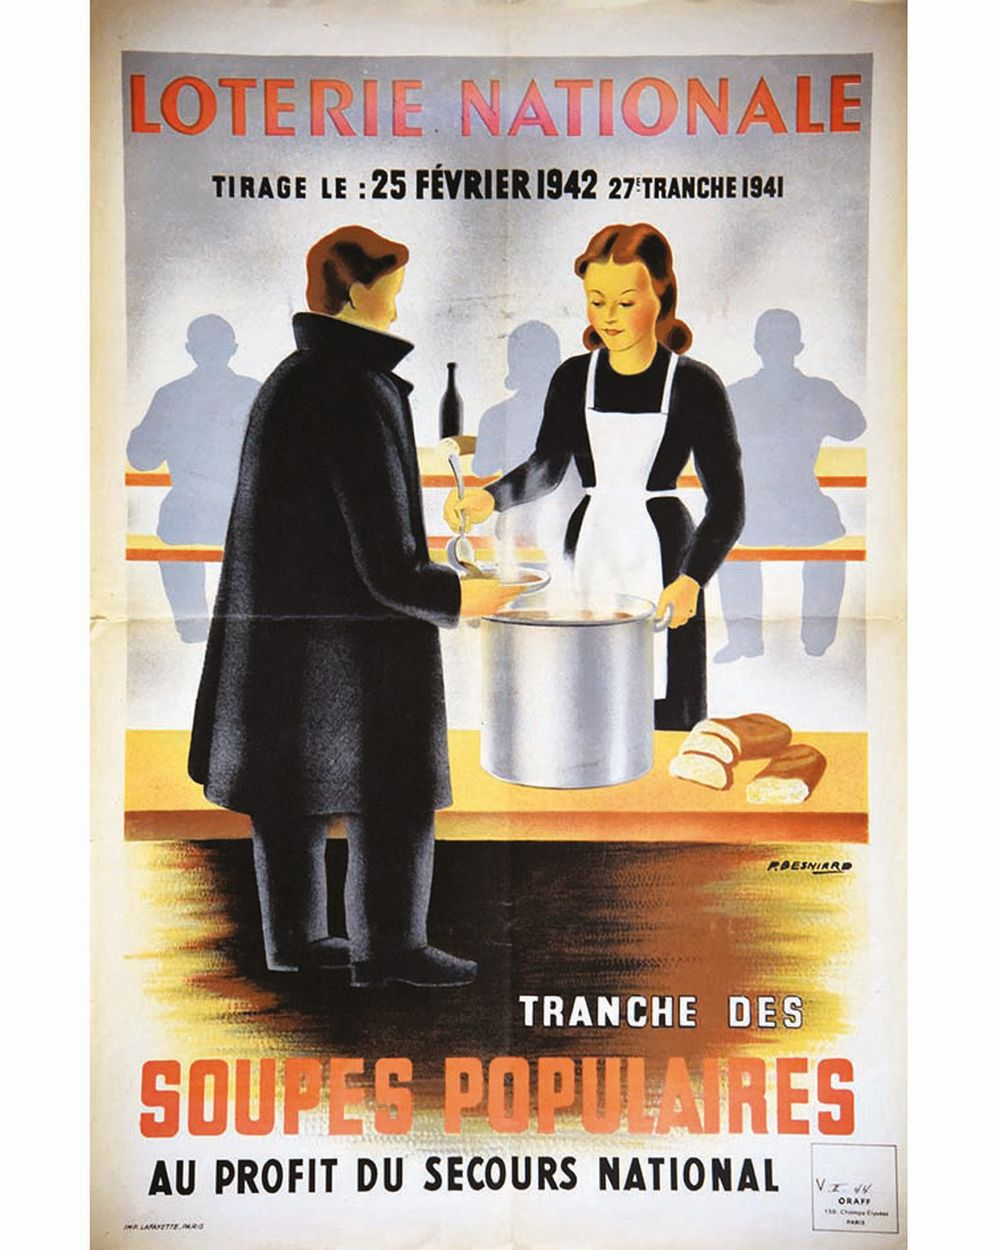 BESNIARD P. - Soupes Polulaires Loterie Nationale     1941